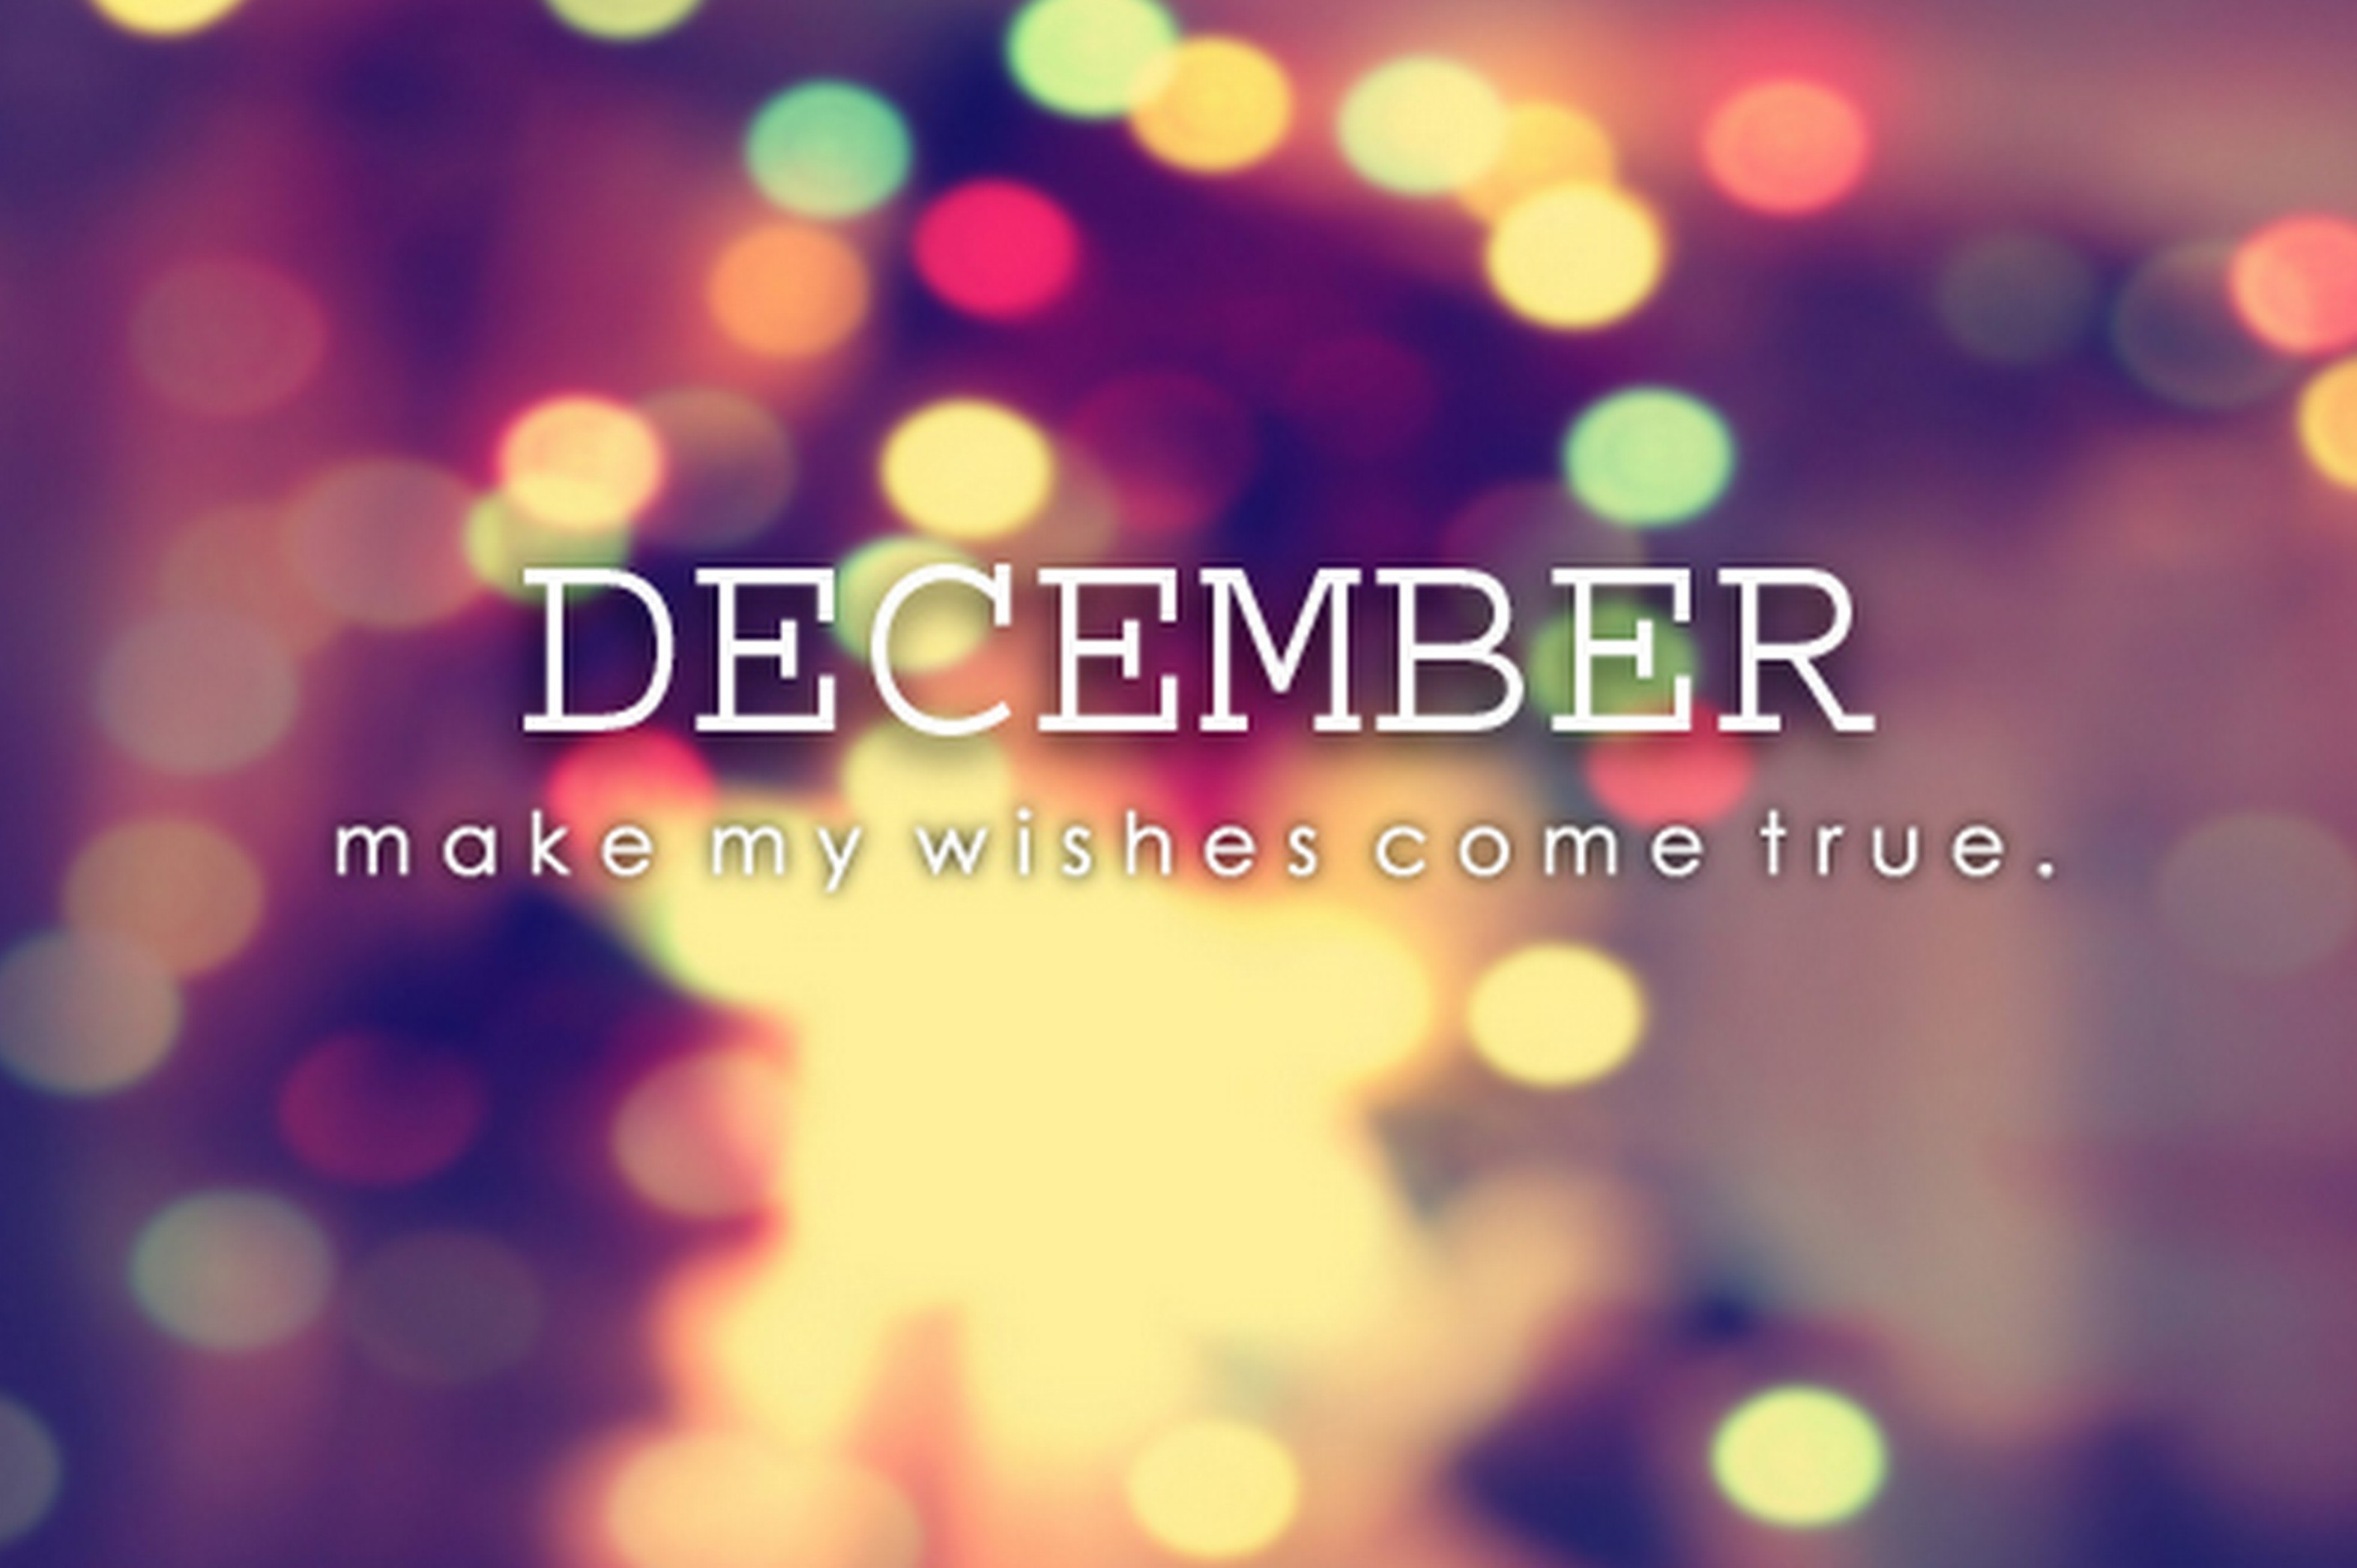 Wishes Do Come True Quotes: 23 Signs You've Entered The Year-End Twilight Zone And You